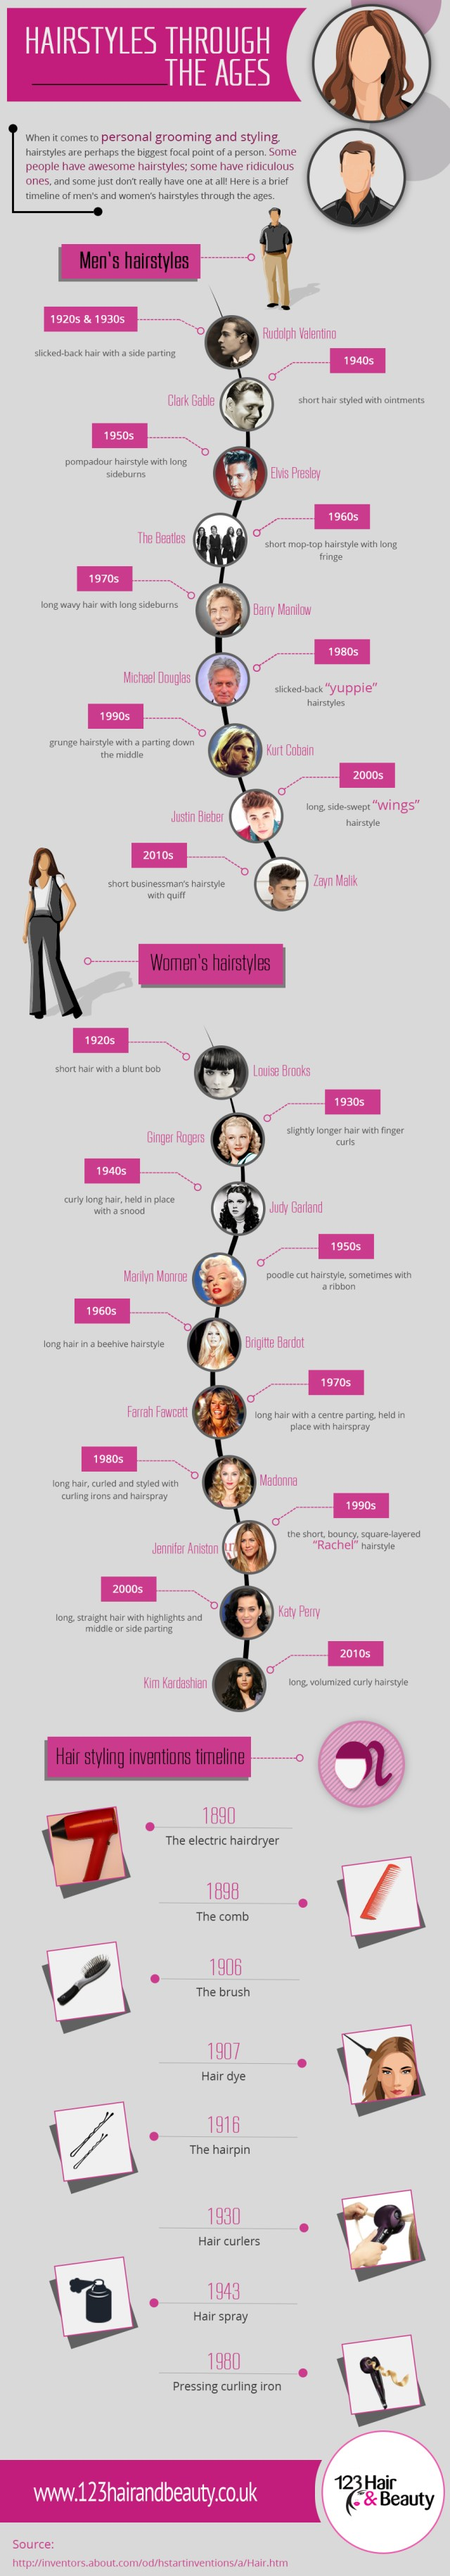 hairstyles through the ages   visual.ly